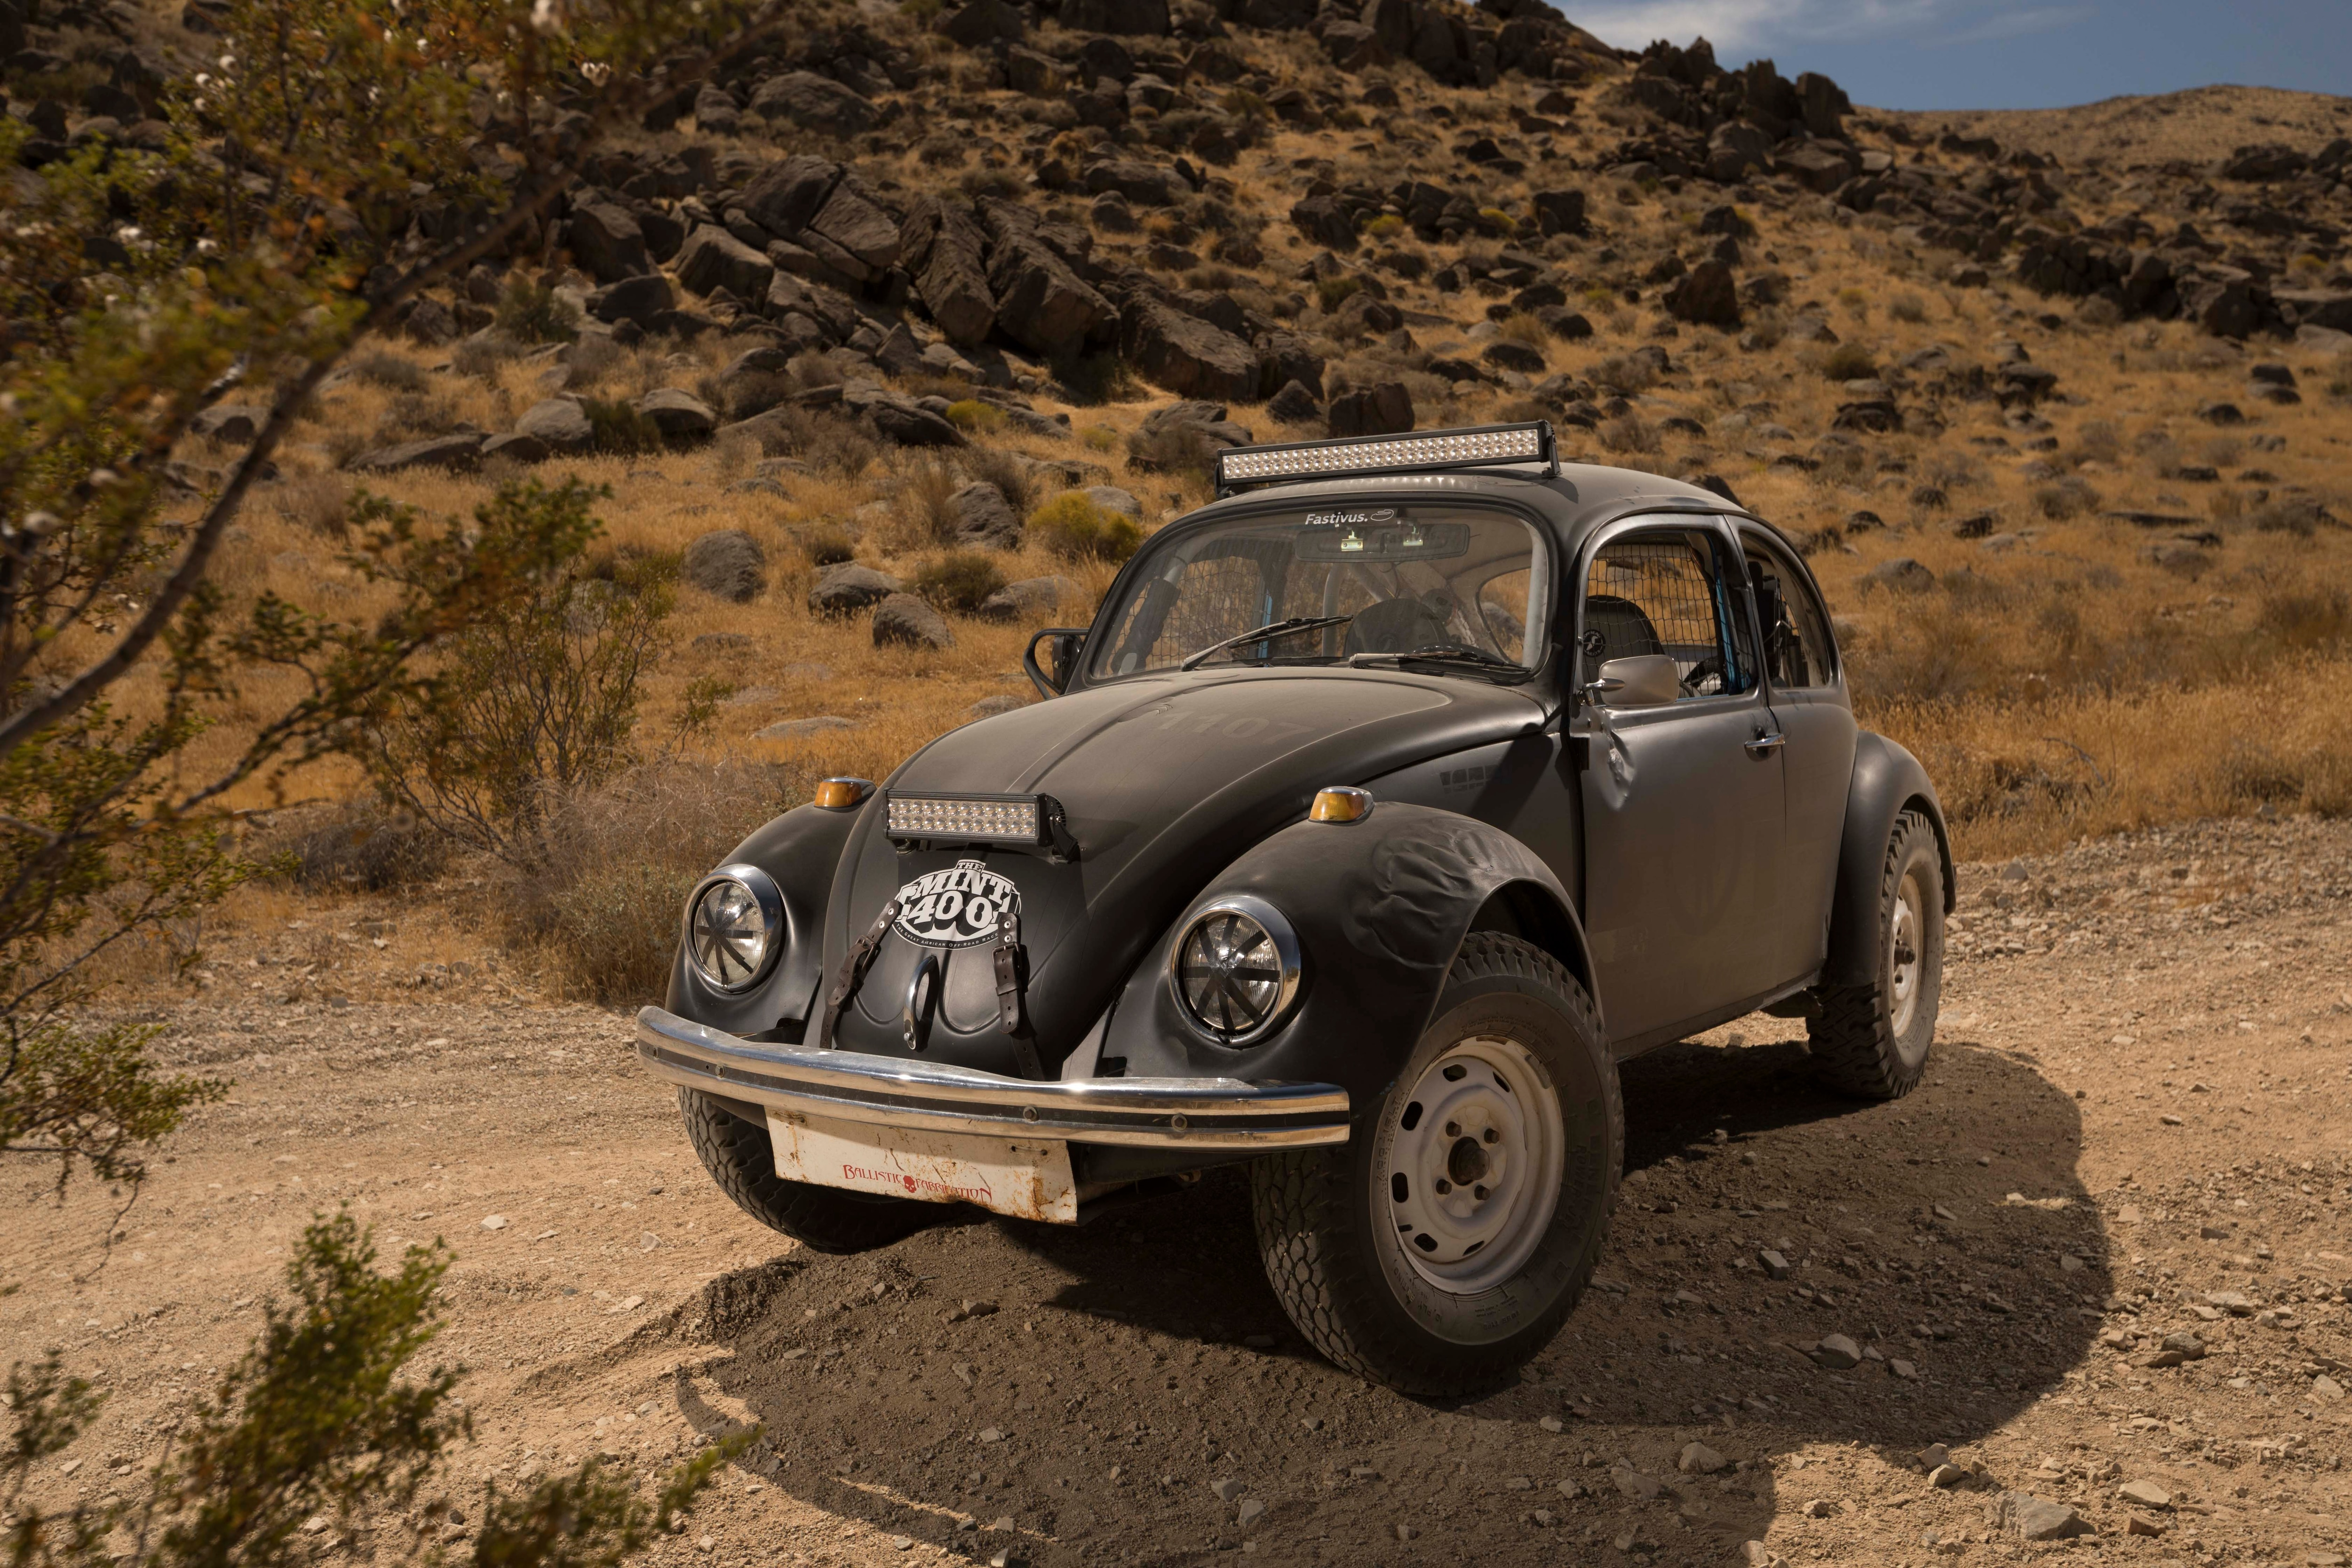 Who is Celebrating 50 Years? Volkswagen and the SCORE Baja 1000